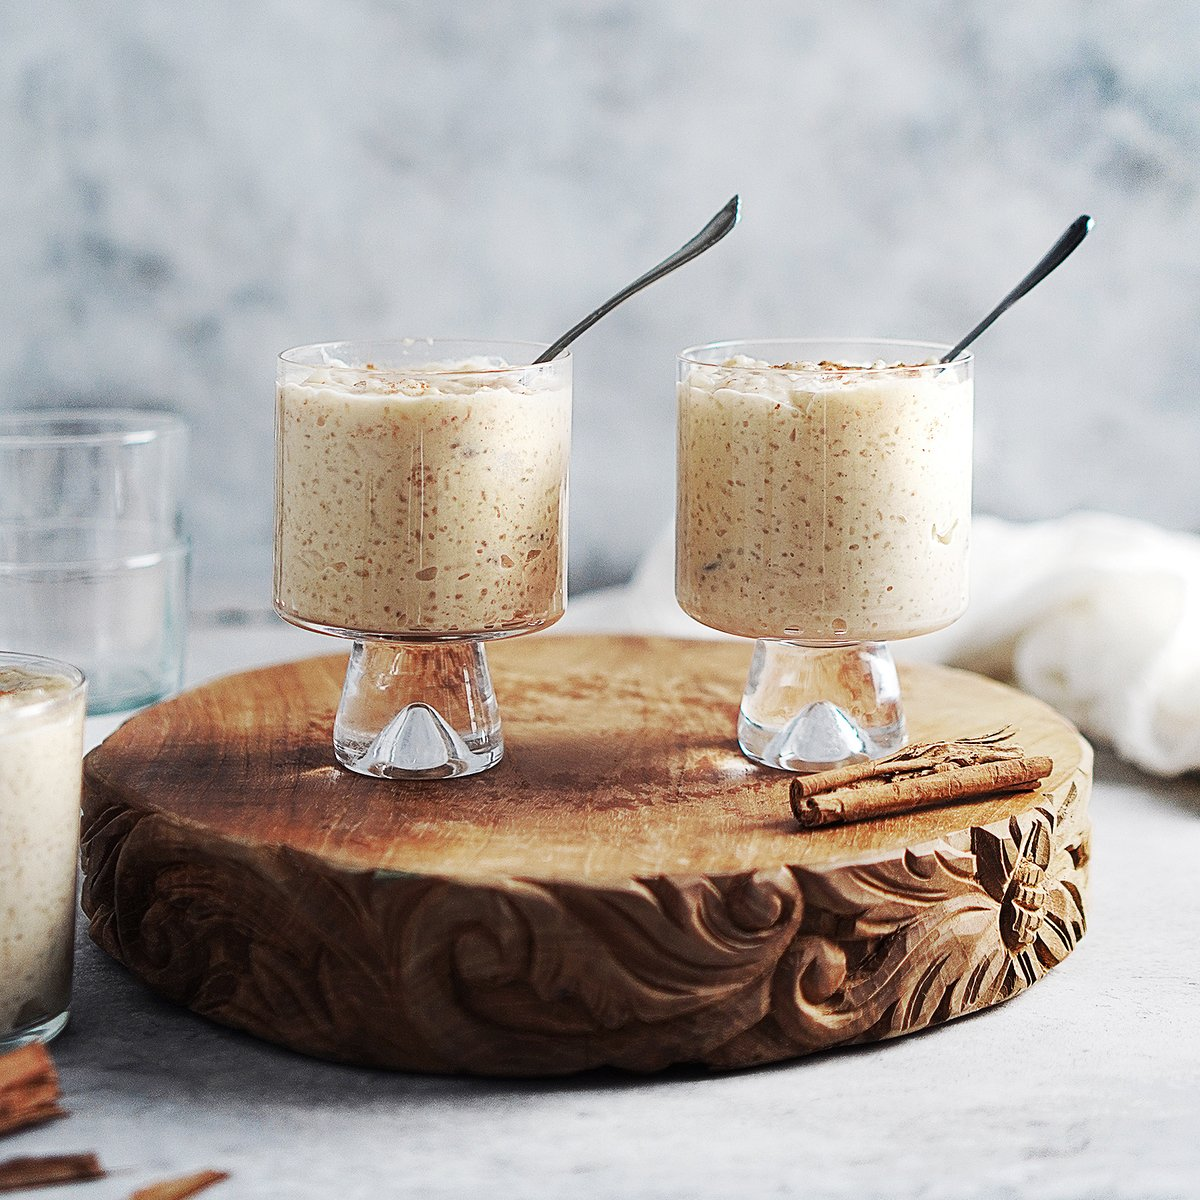 Two small glasses with arroz con leche and a spoon.